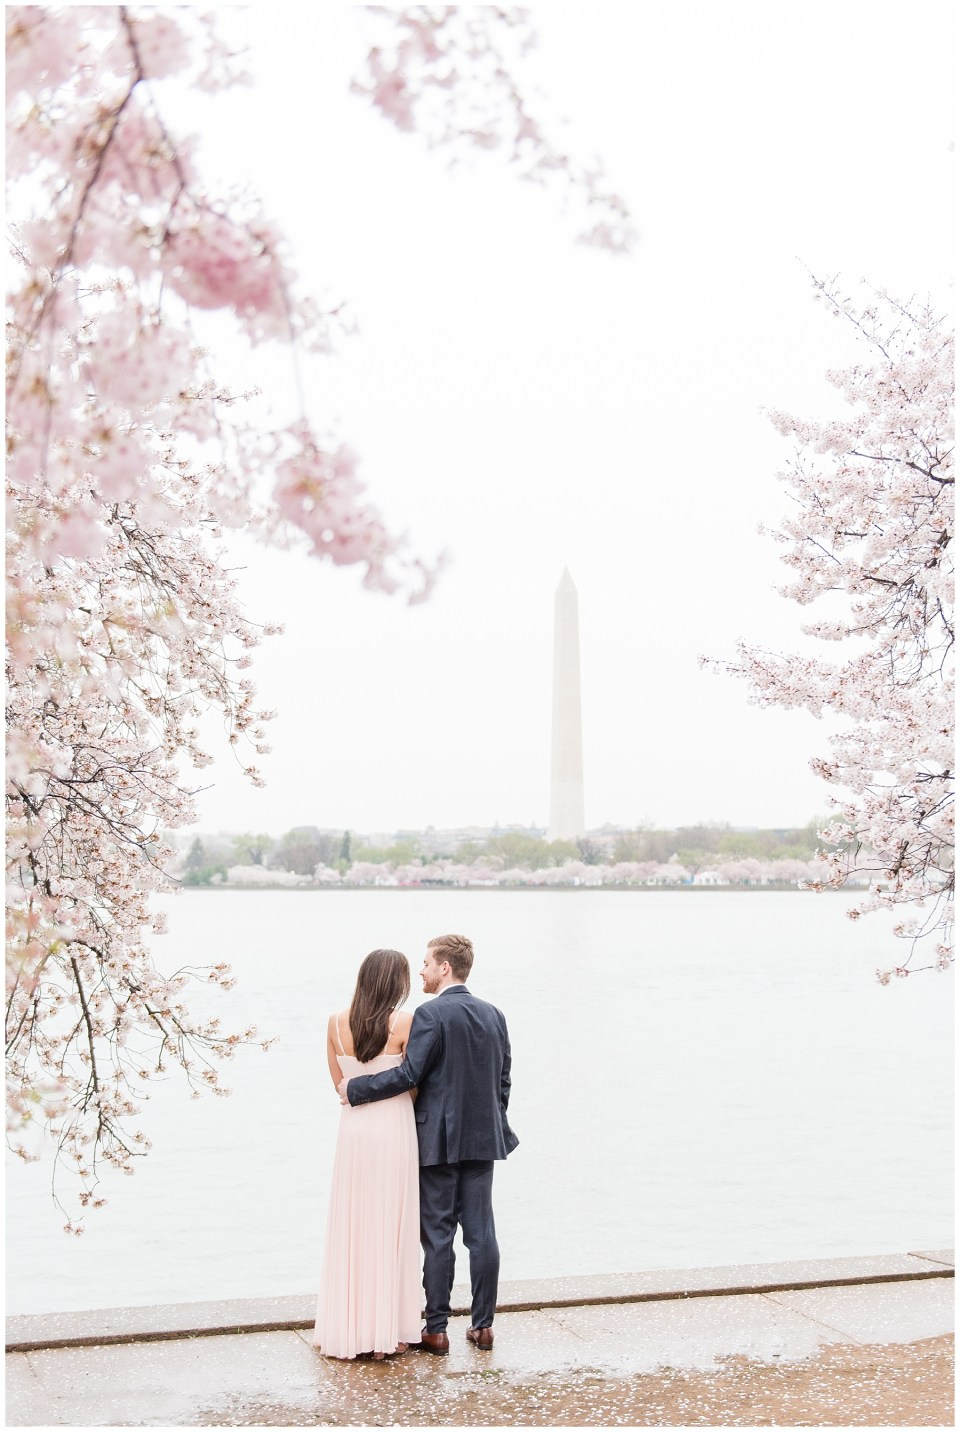 dc-cherry-blossom-engagement-photos-georgetown-engagement-photo-22_photos.jpg